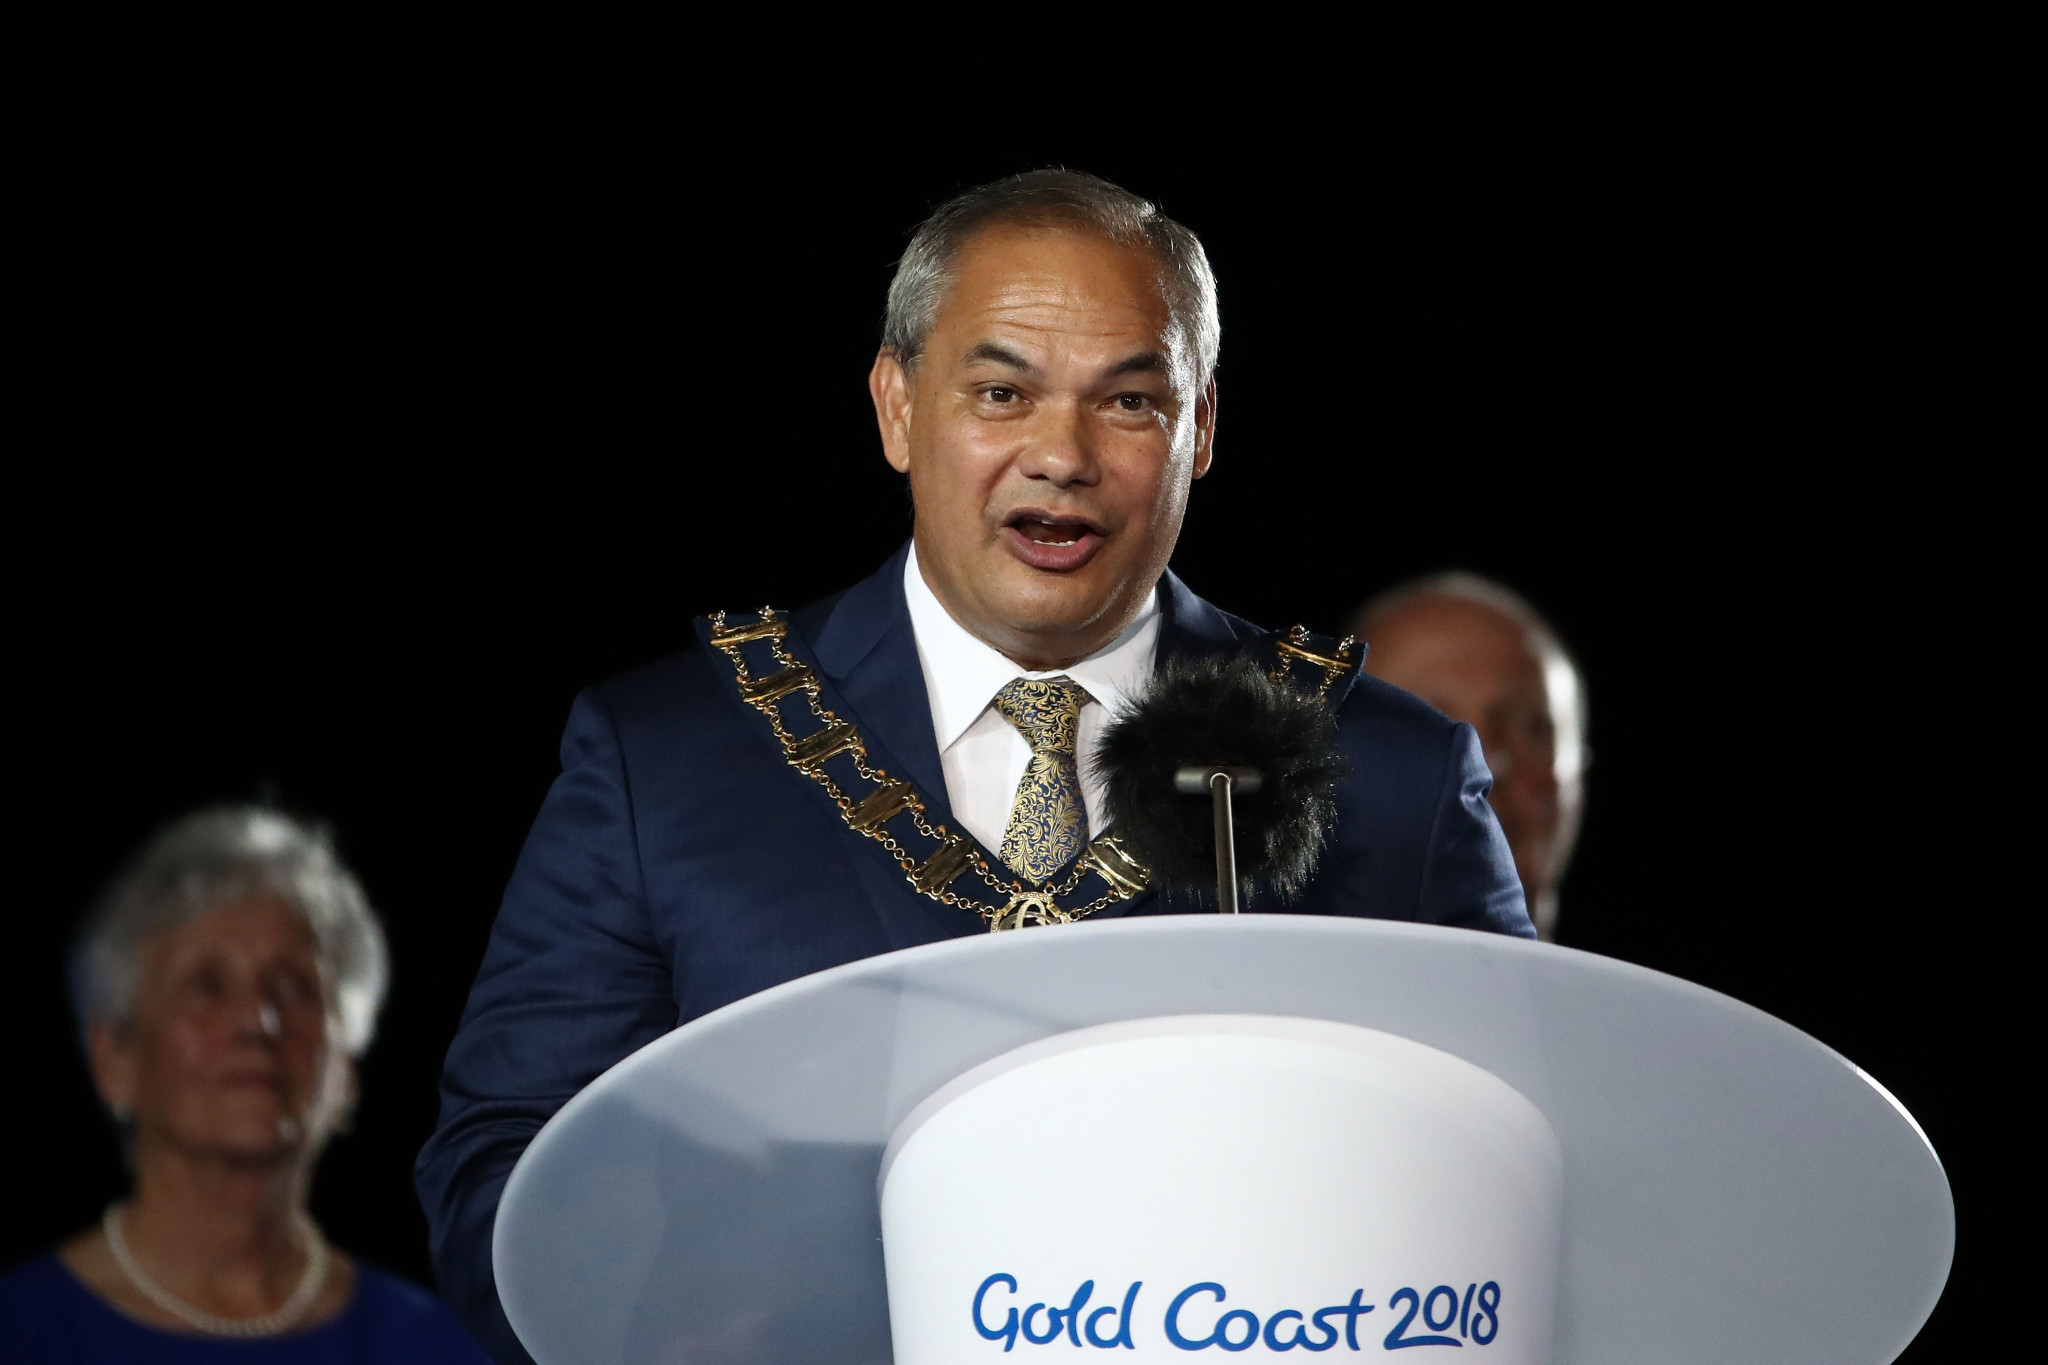 Gold Coast Mayor hails benefits of hosting Commonwealth Games